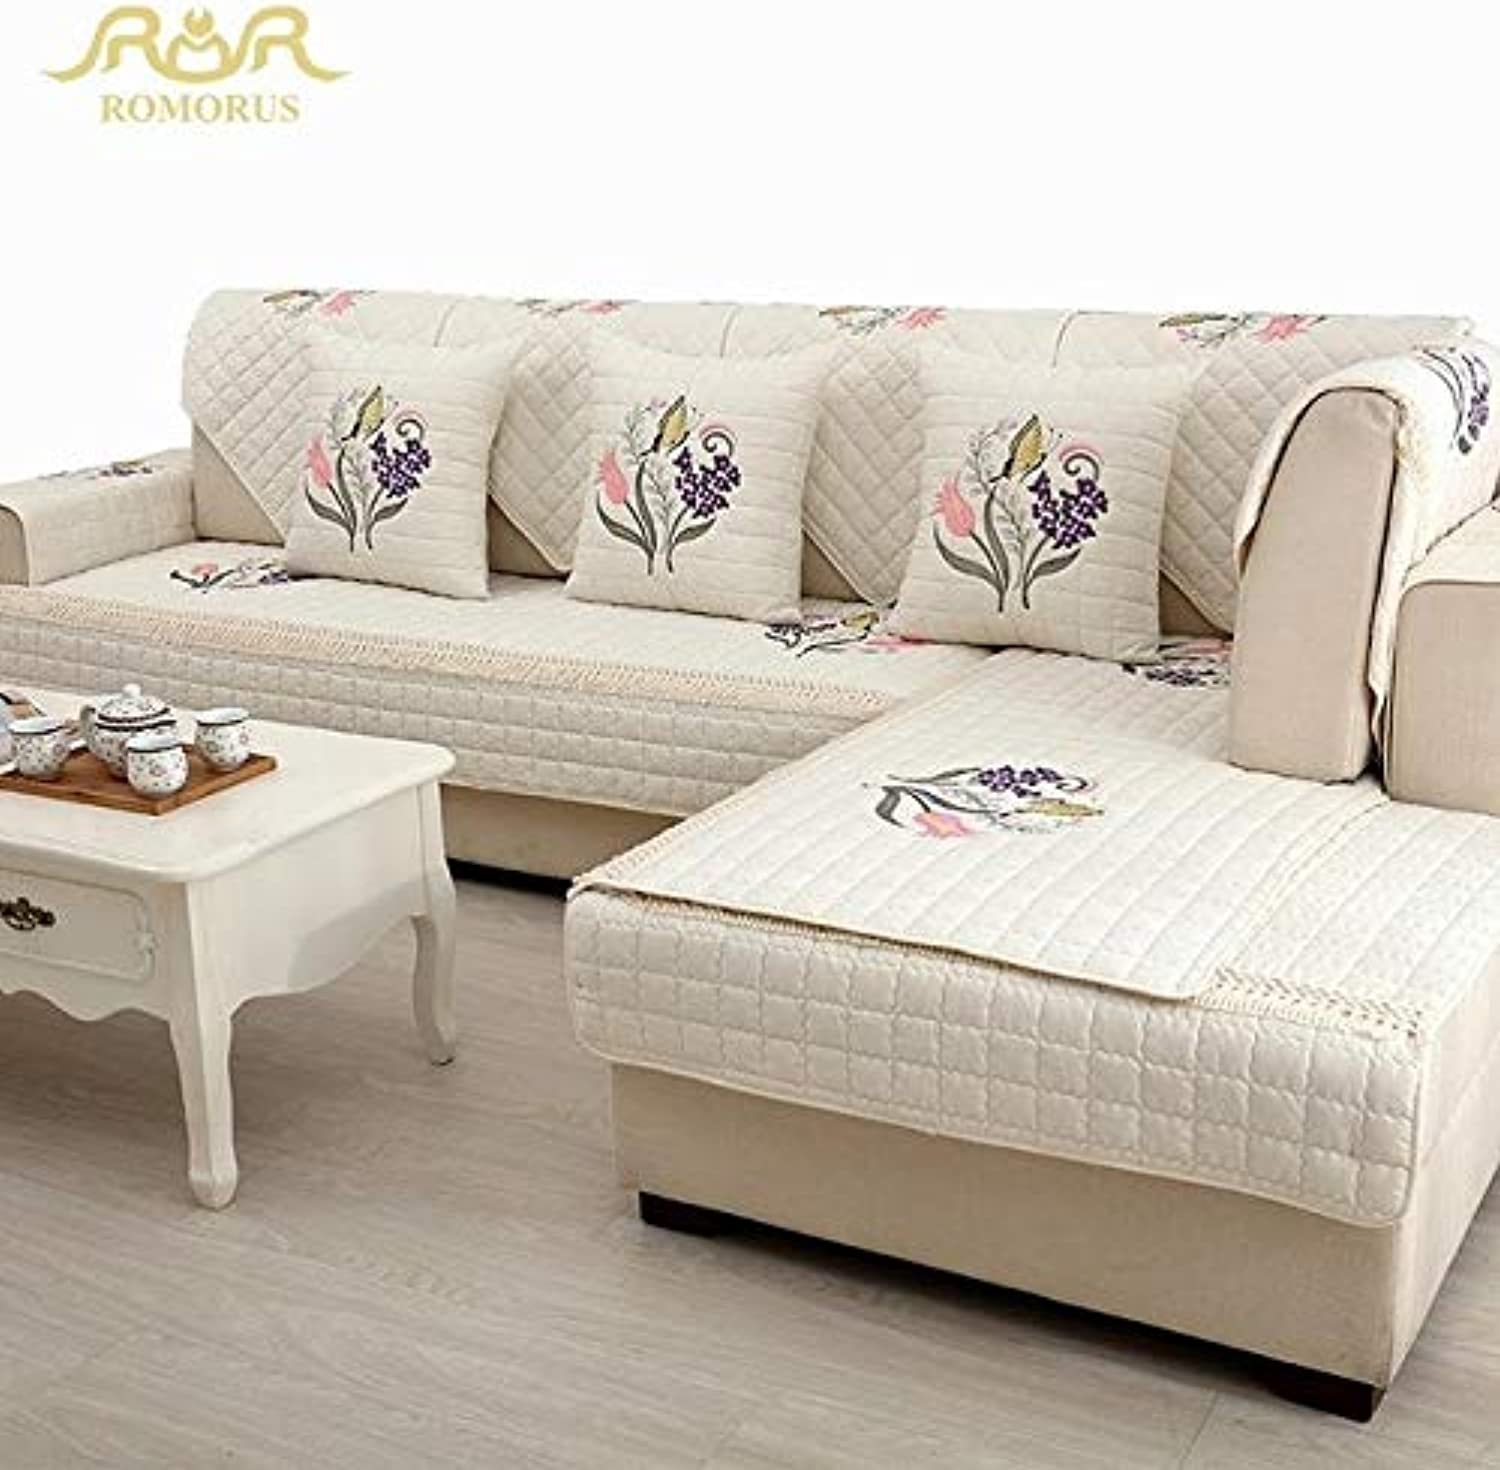 Farmerly 1-Piece Embroidered Slip Sofa Non-Slip Cotton Quilted Corner Sectional Sofa Couch Cover Lig Room Sofa Decoration  Creamy White 04, 90x90cm 1 Piece